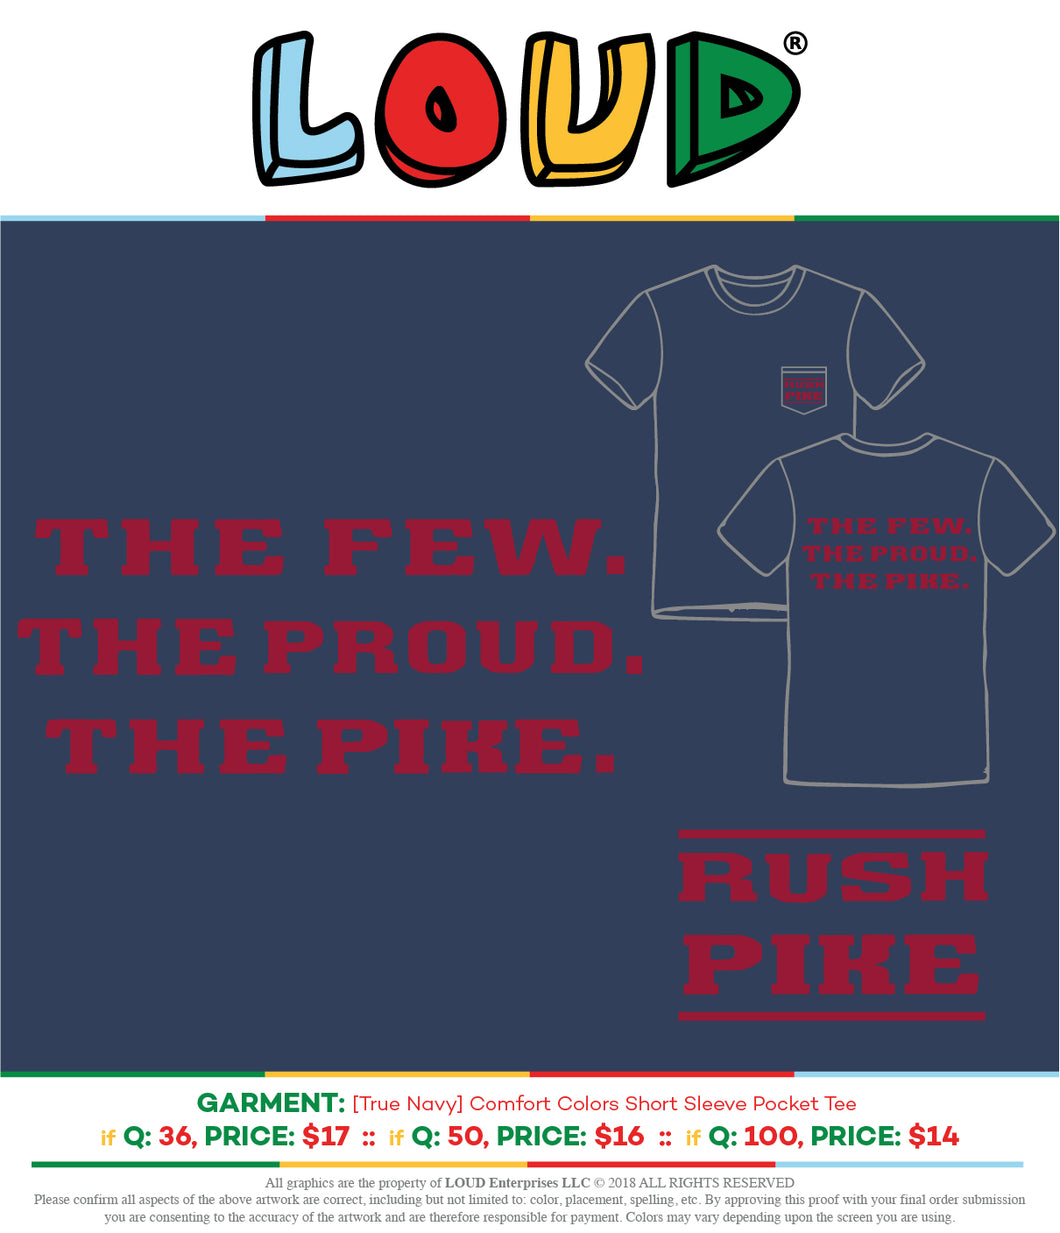 FGCU Pike Fall Rush Shirts 2018